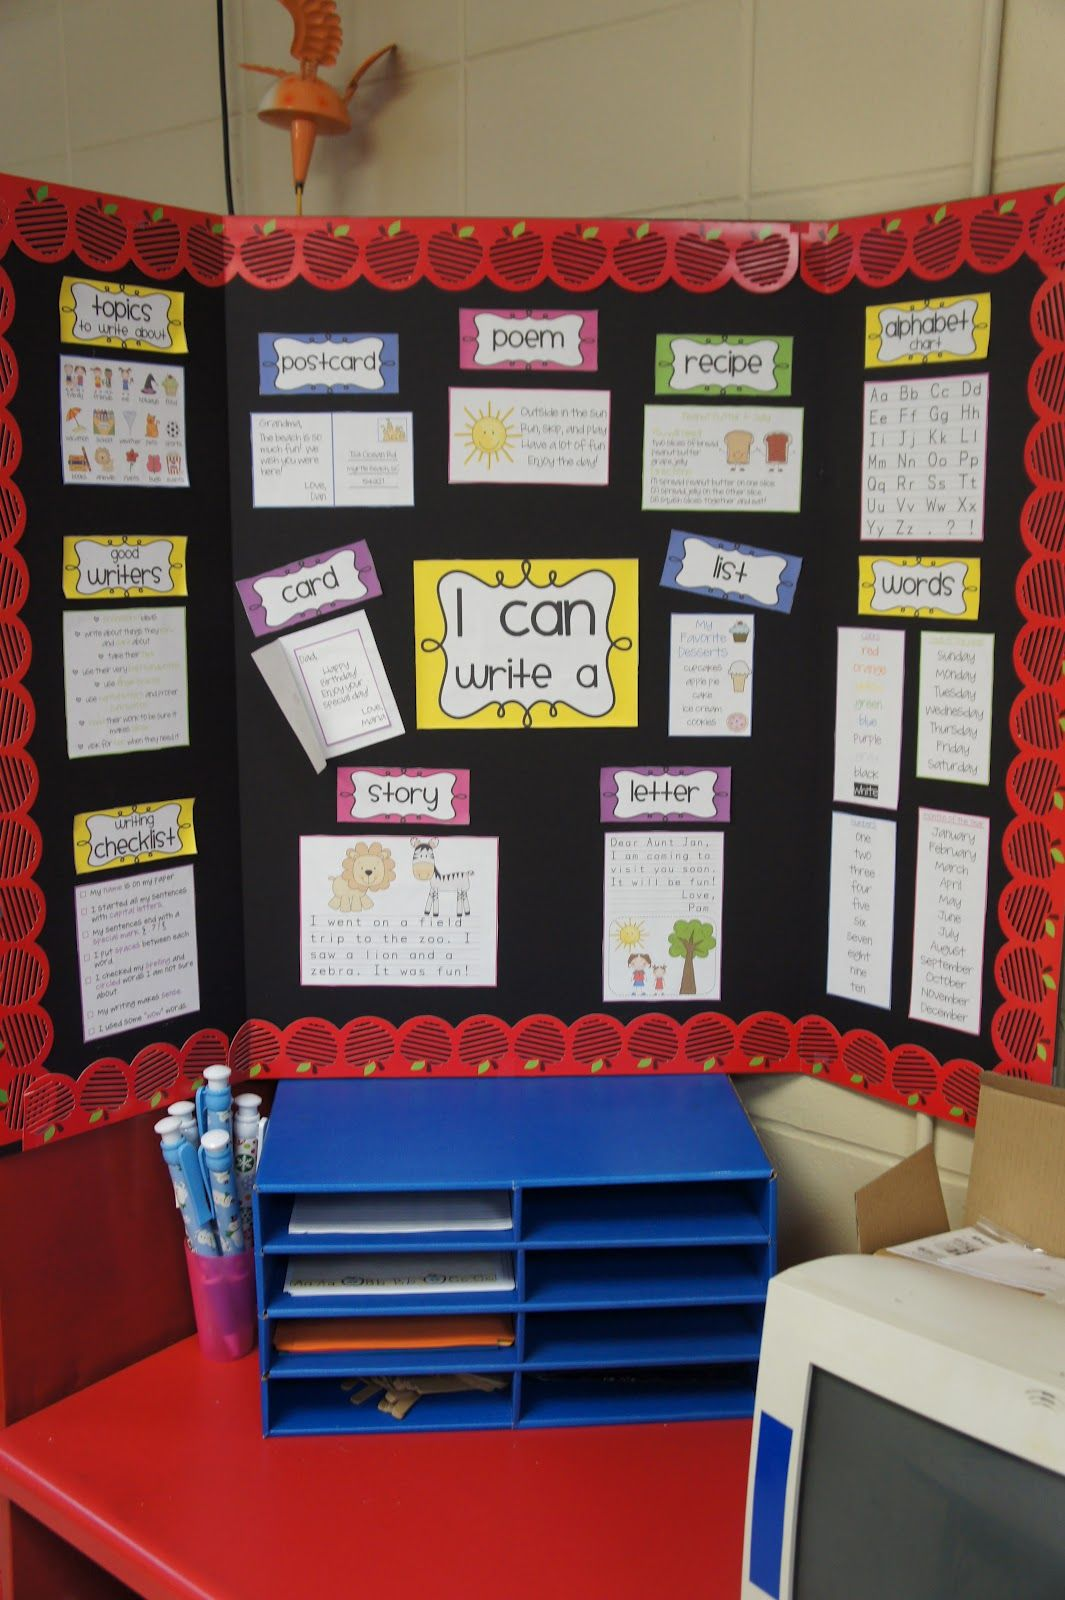 classroom writing center Essay writing tips - very helpful during school, but also in college :) find this pin and more on classroom writing centers by kemper amstutz essay writing for highschool students persuasive essay topics for high school students essay helpper.